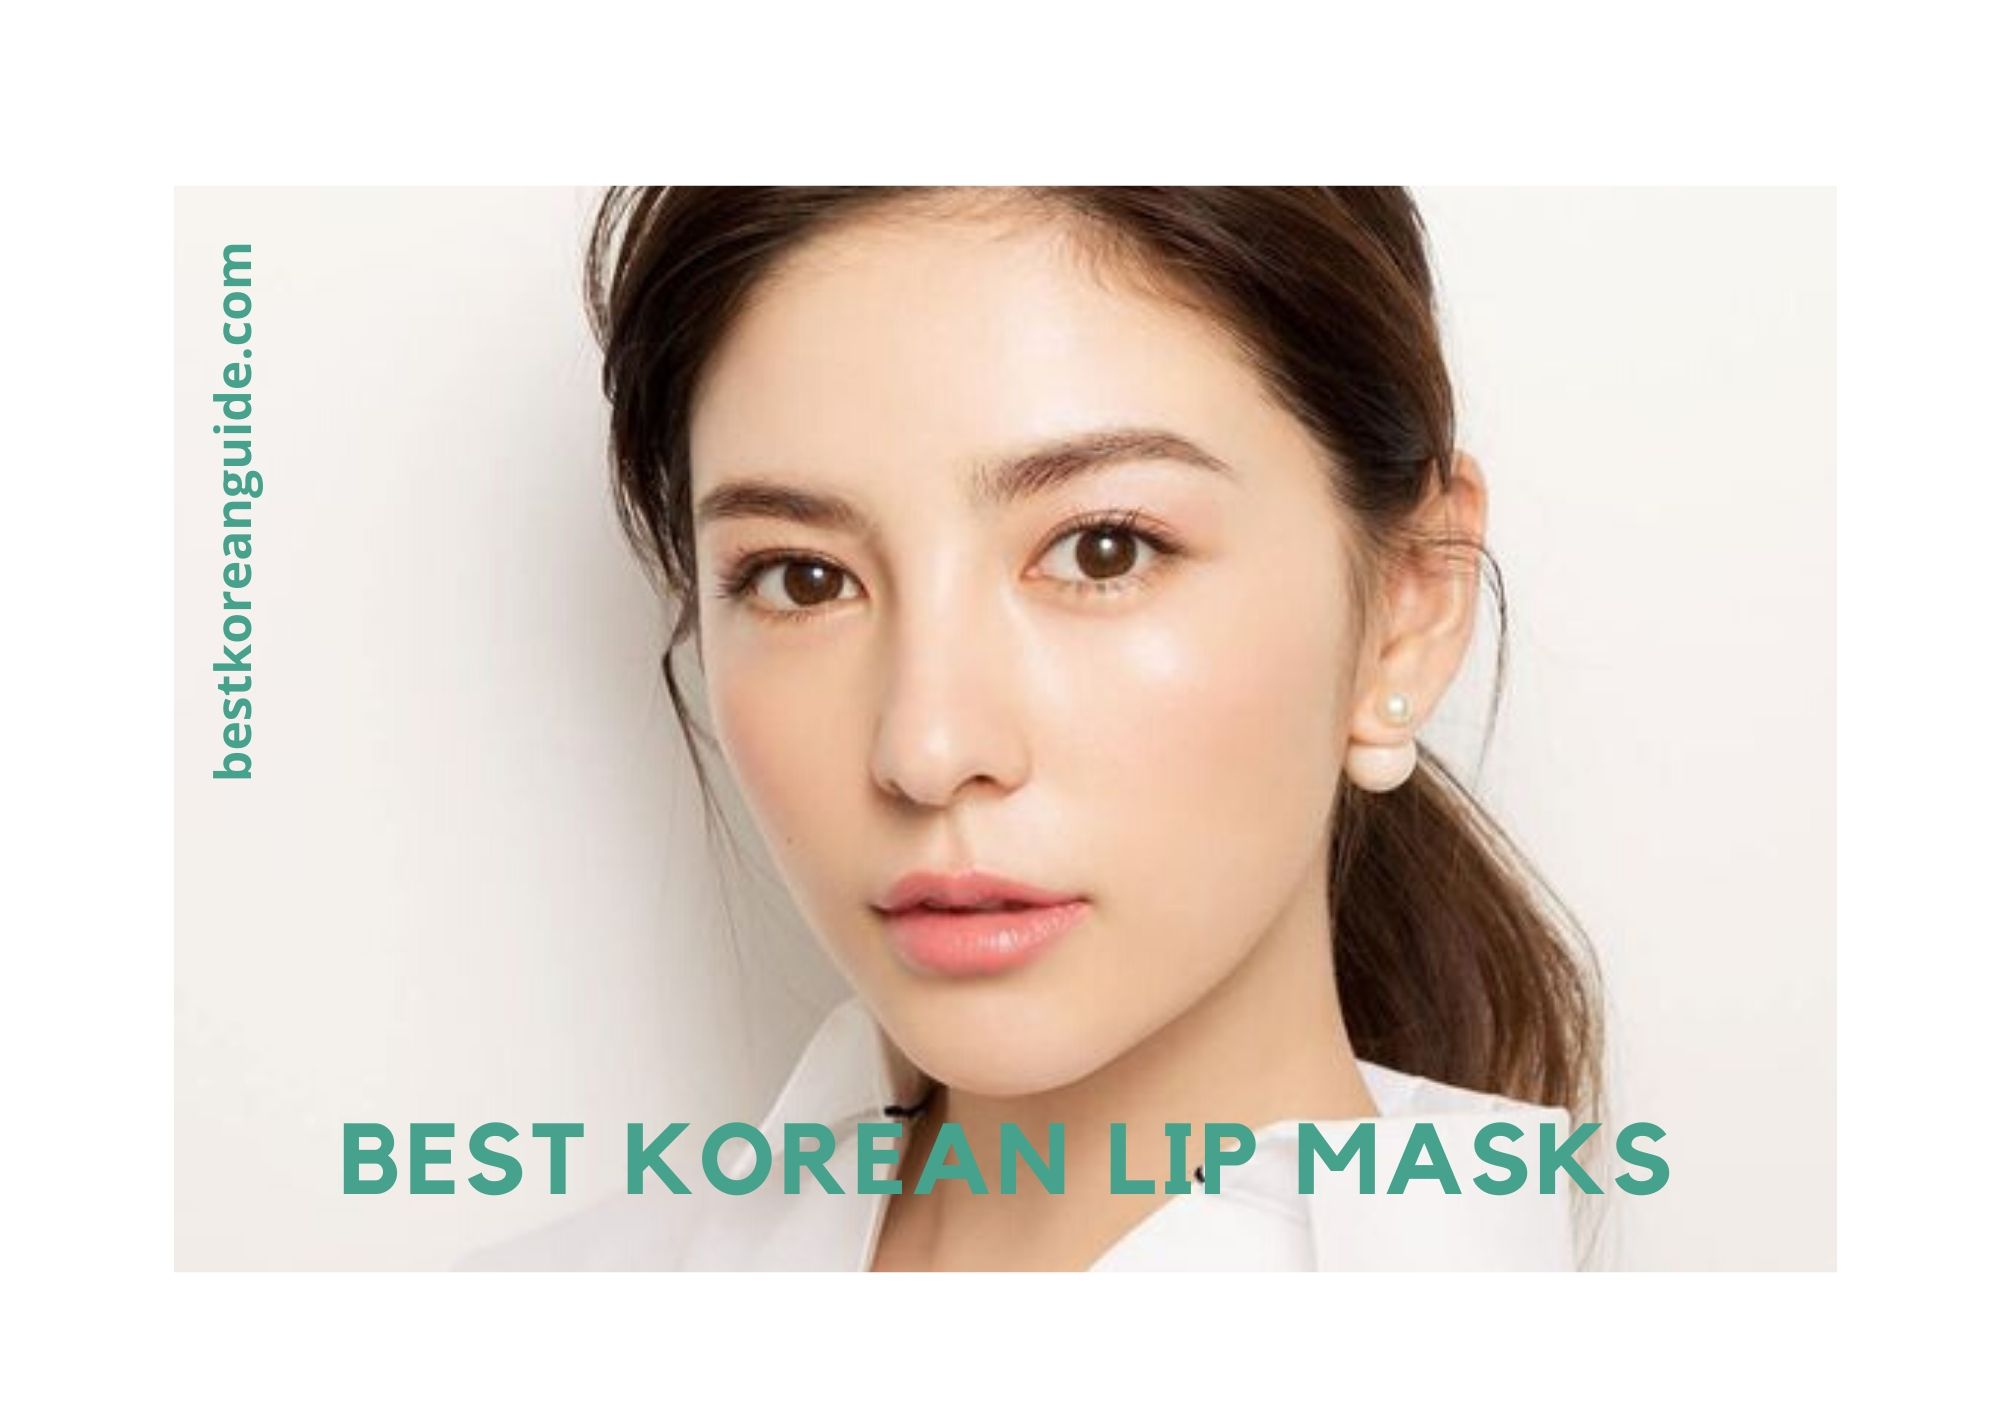 Best Korean Lip Masks